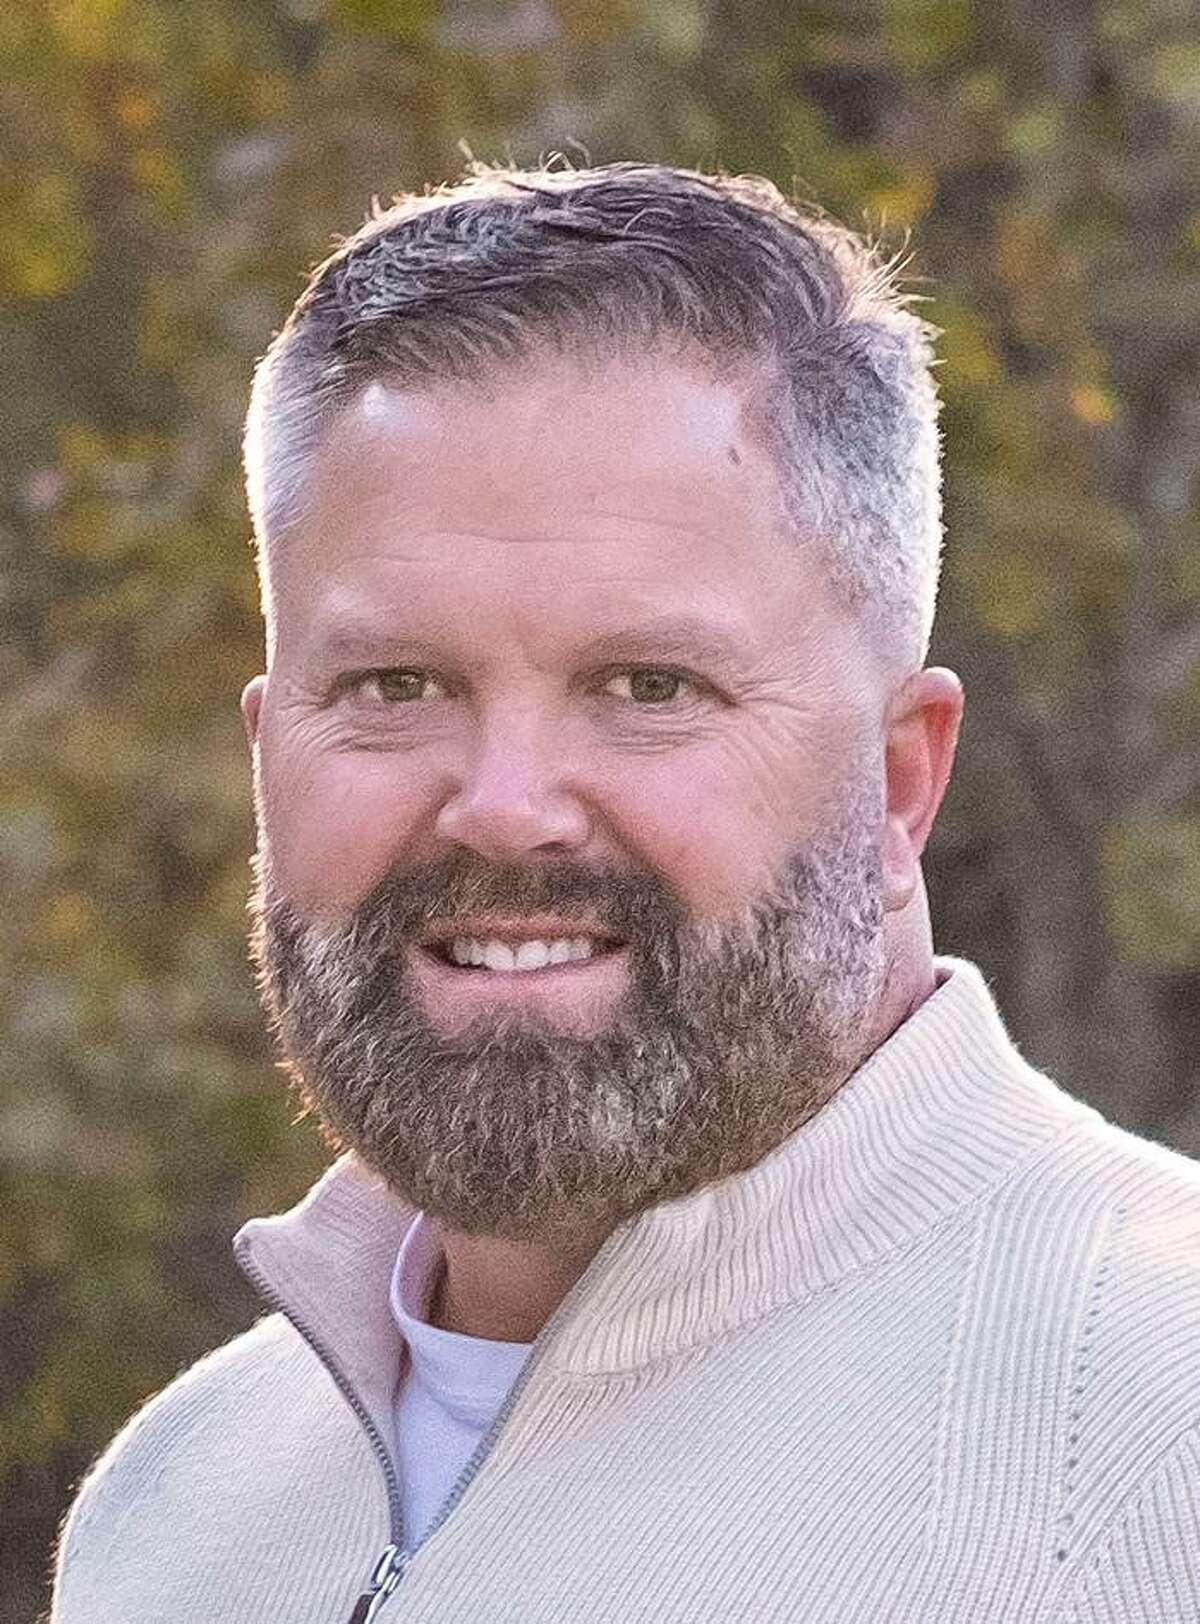 Larry Troy is the new head coach of the Splendora girls soccer program. Troy was an assistant coach during the 2021 season.